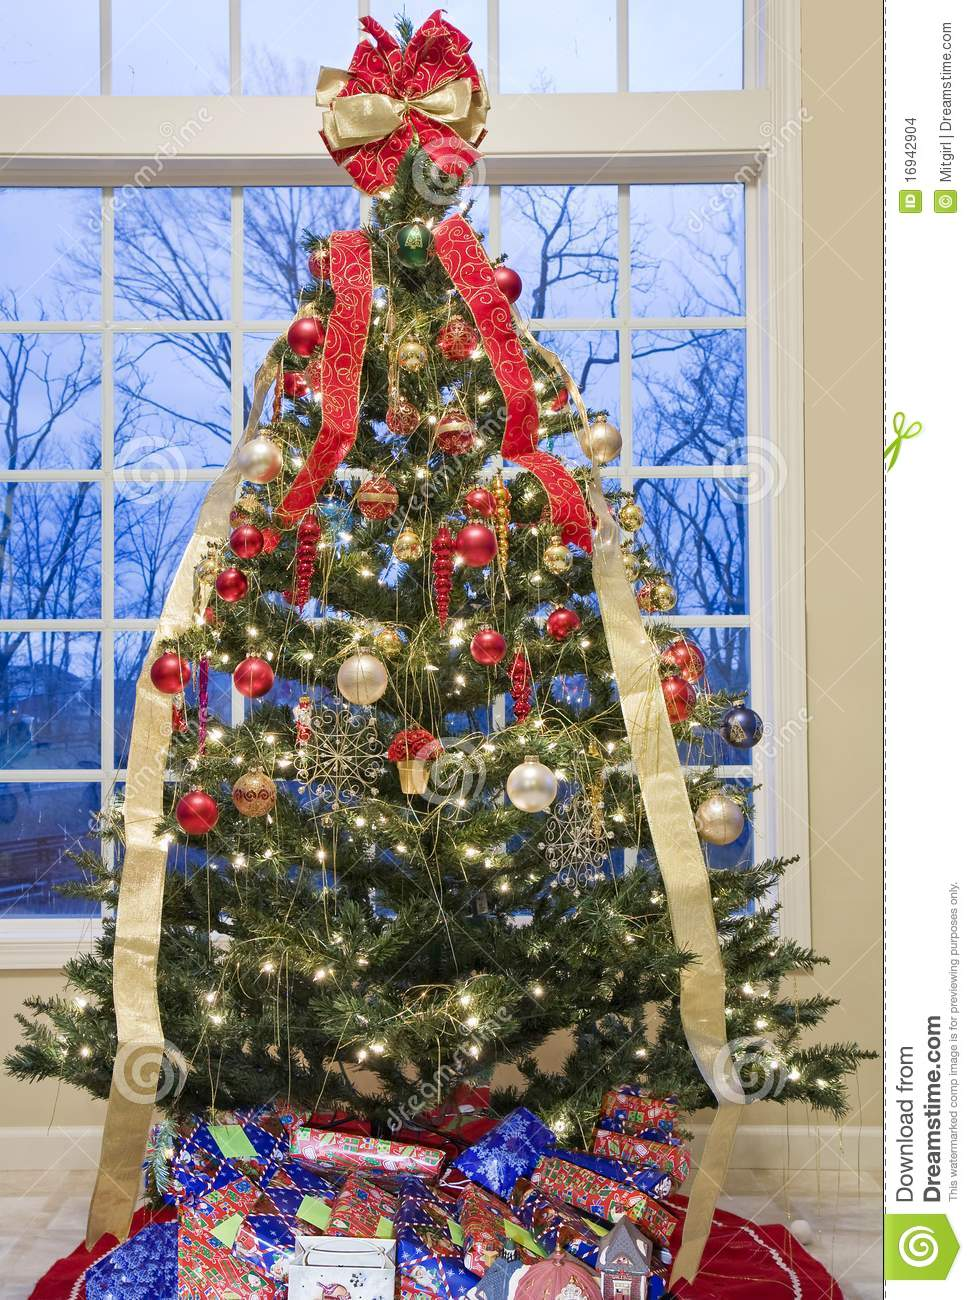 Beautifully Decorated Christmas Tree By A Window Stock